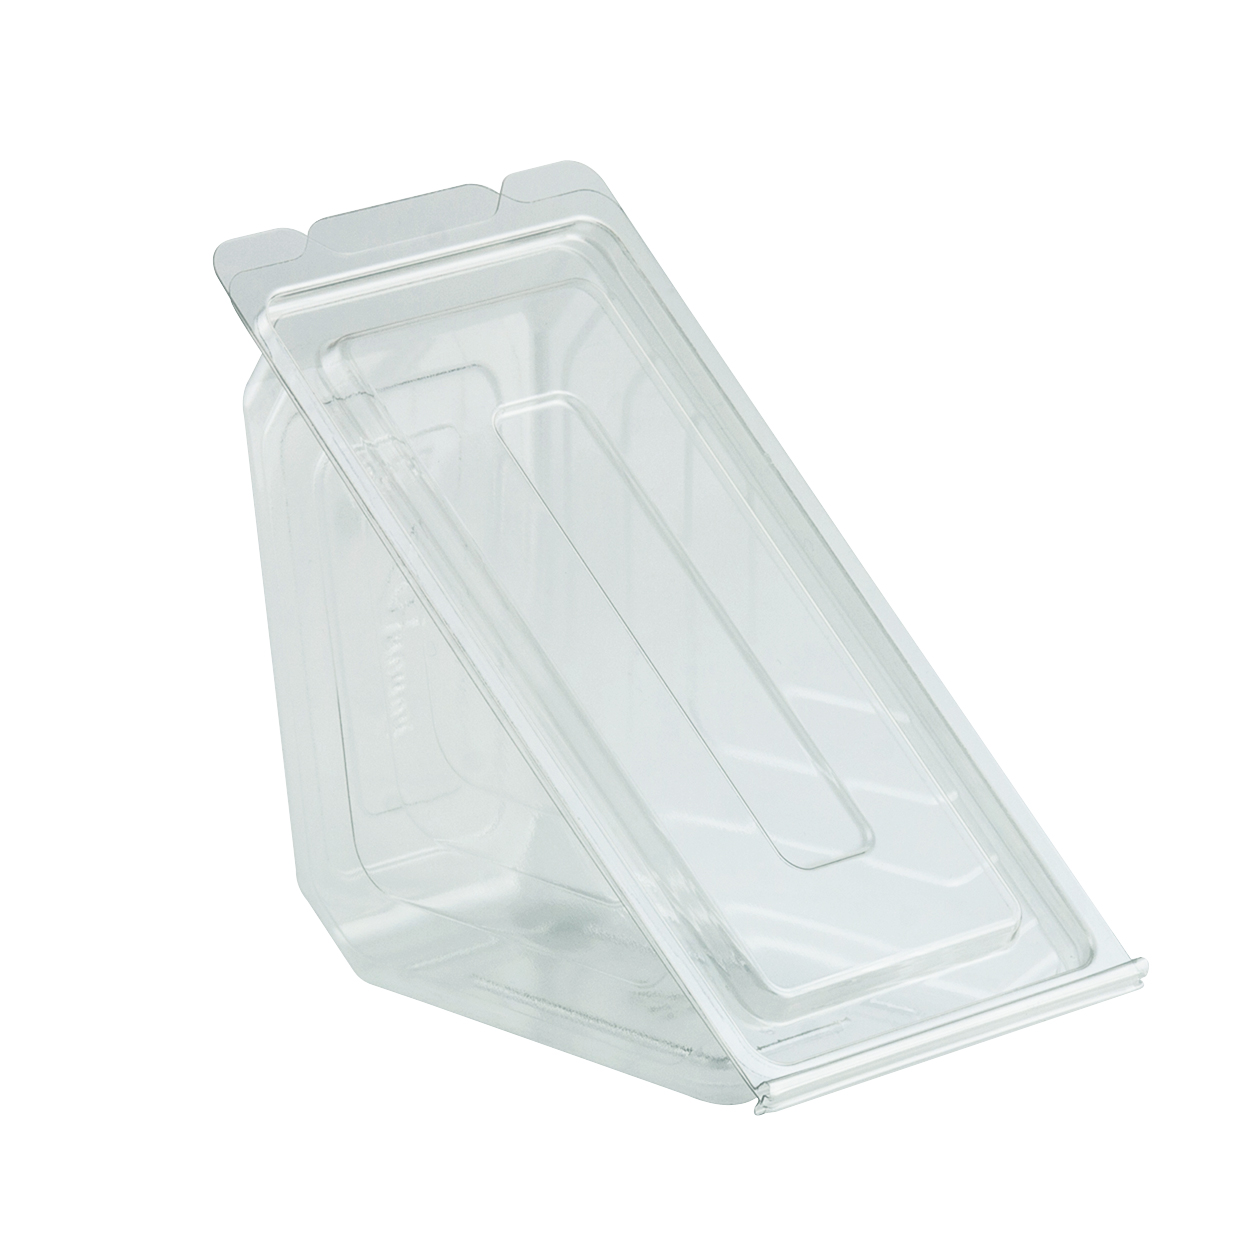 4511019 DV1101 Deliview Clear Hinged Sandwich Wedge